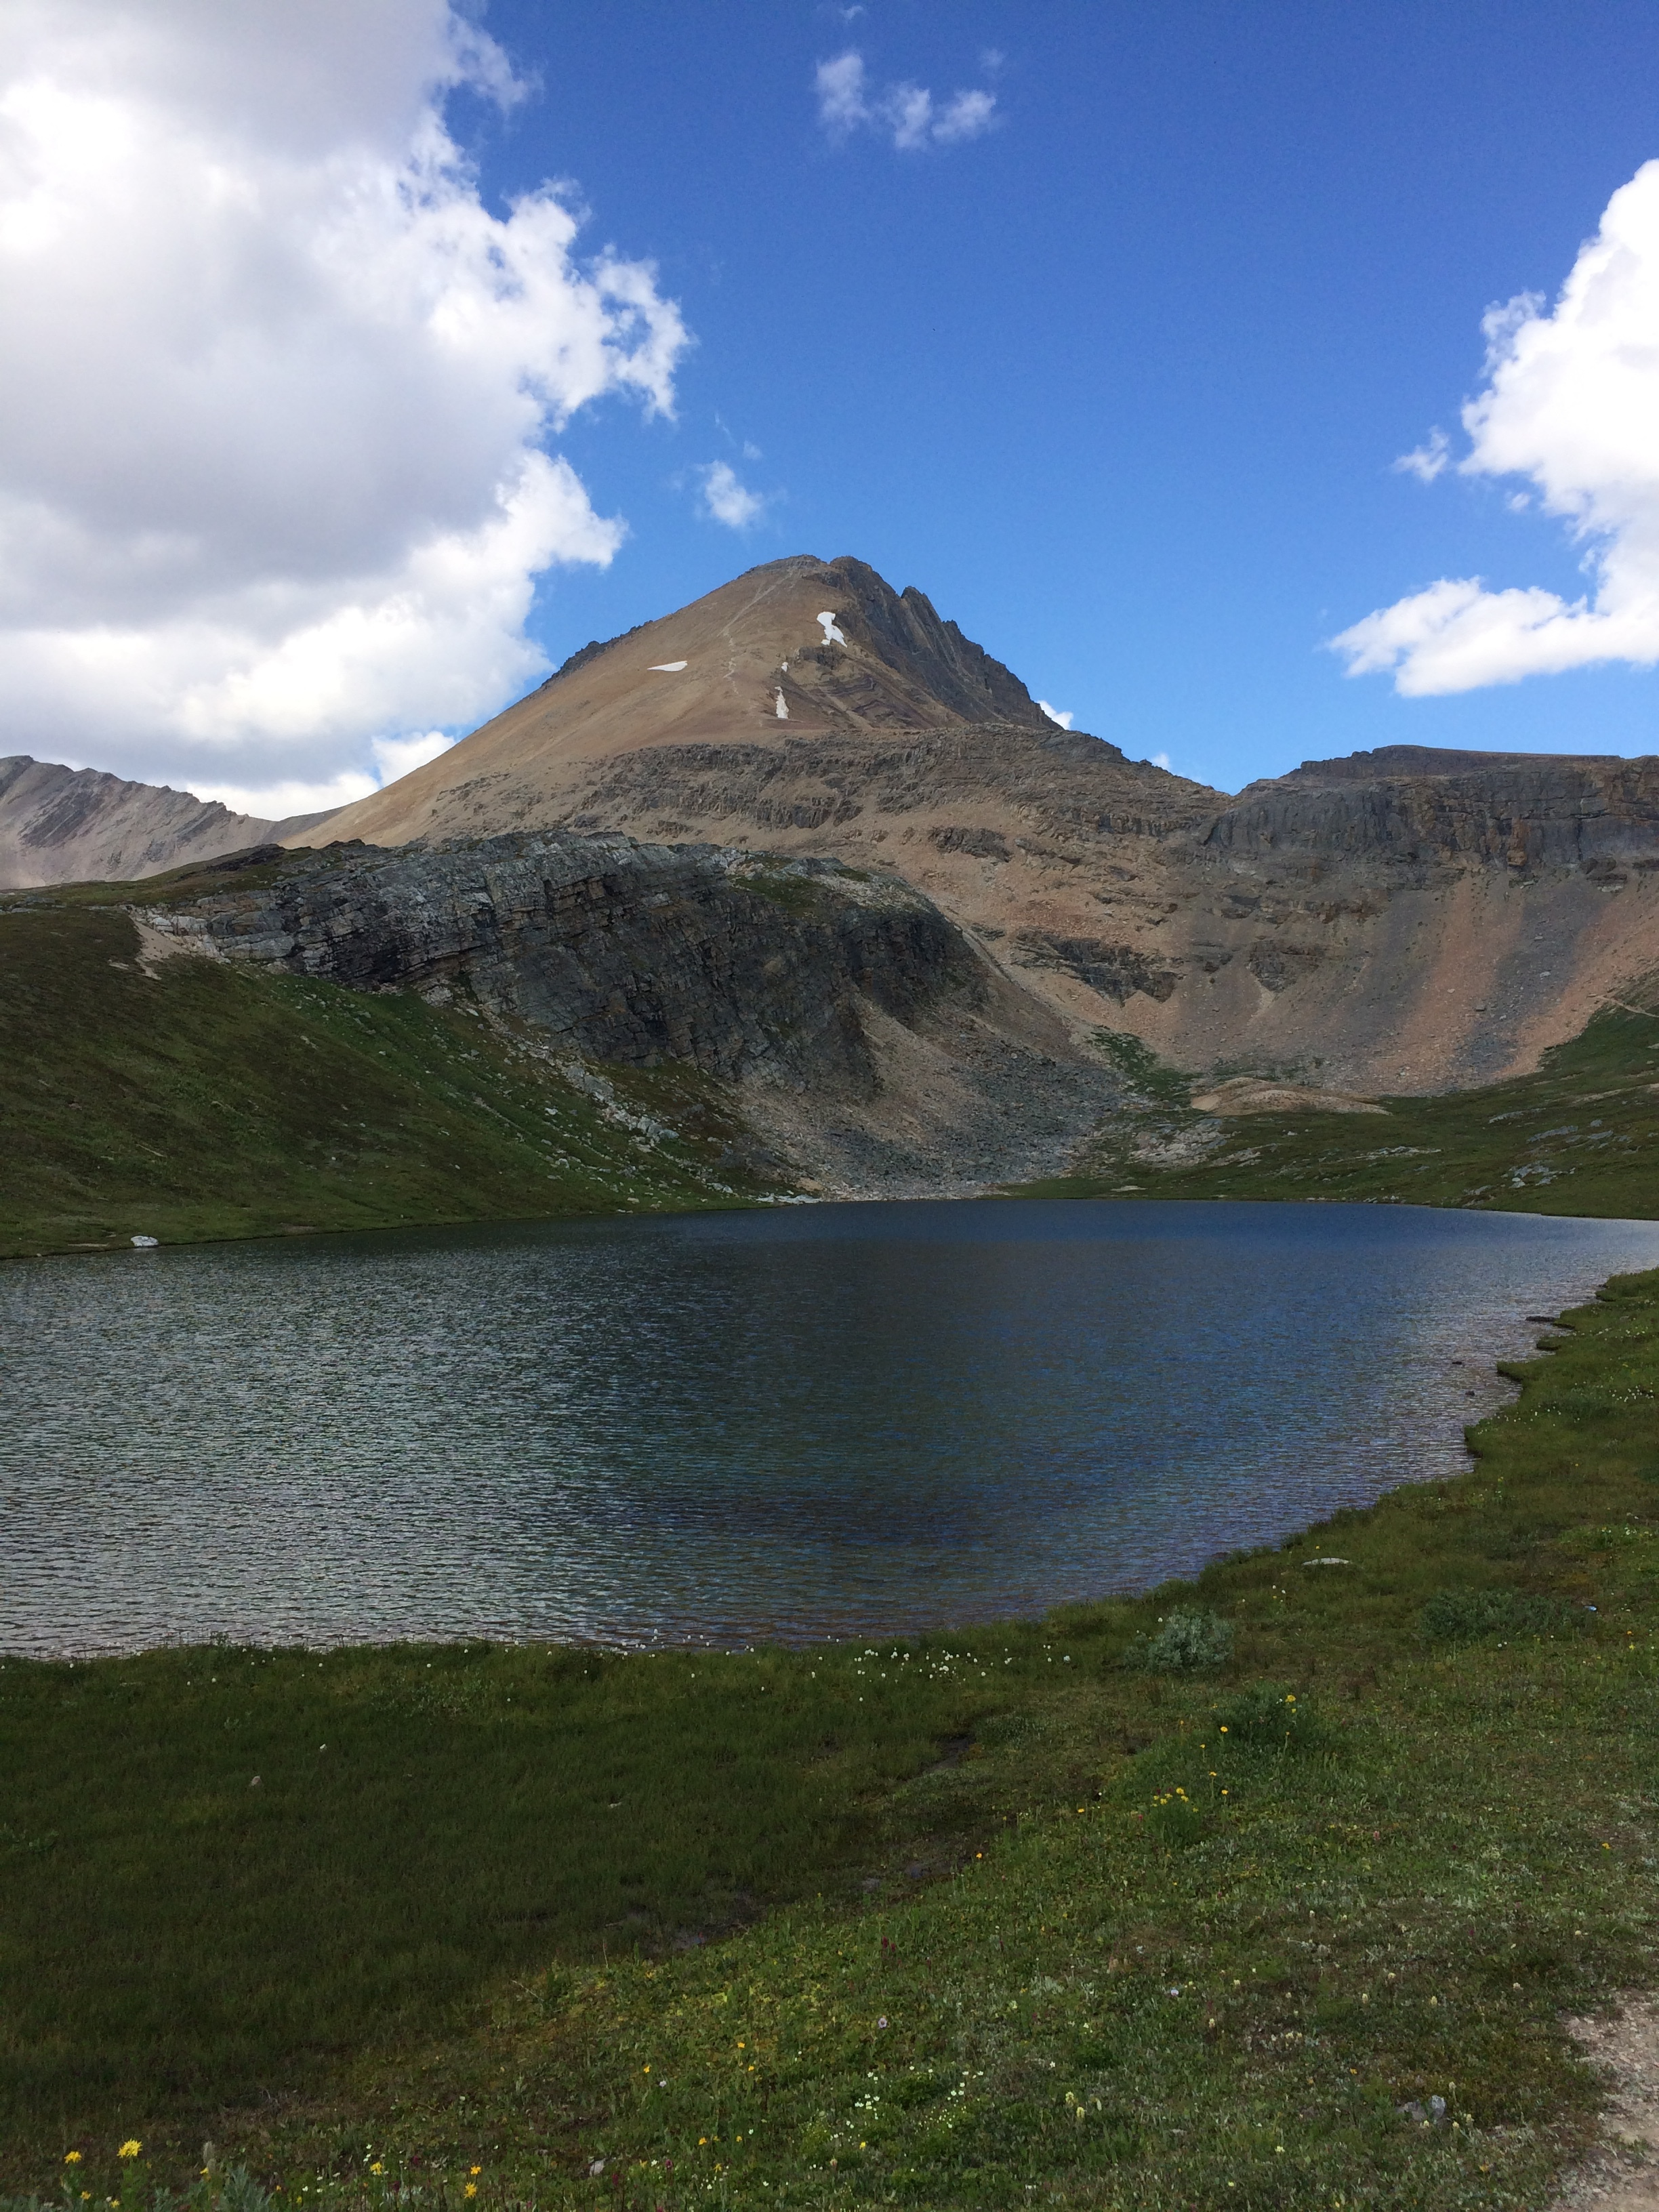 Helen Lake with the summit of Cirque Peak in the distance.